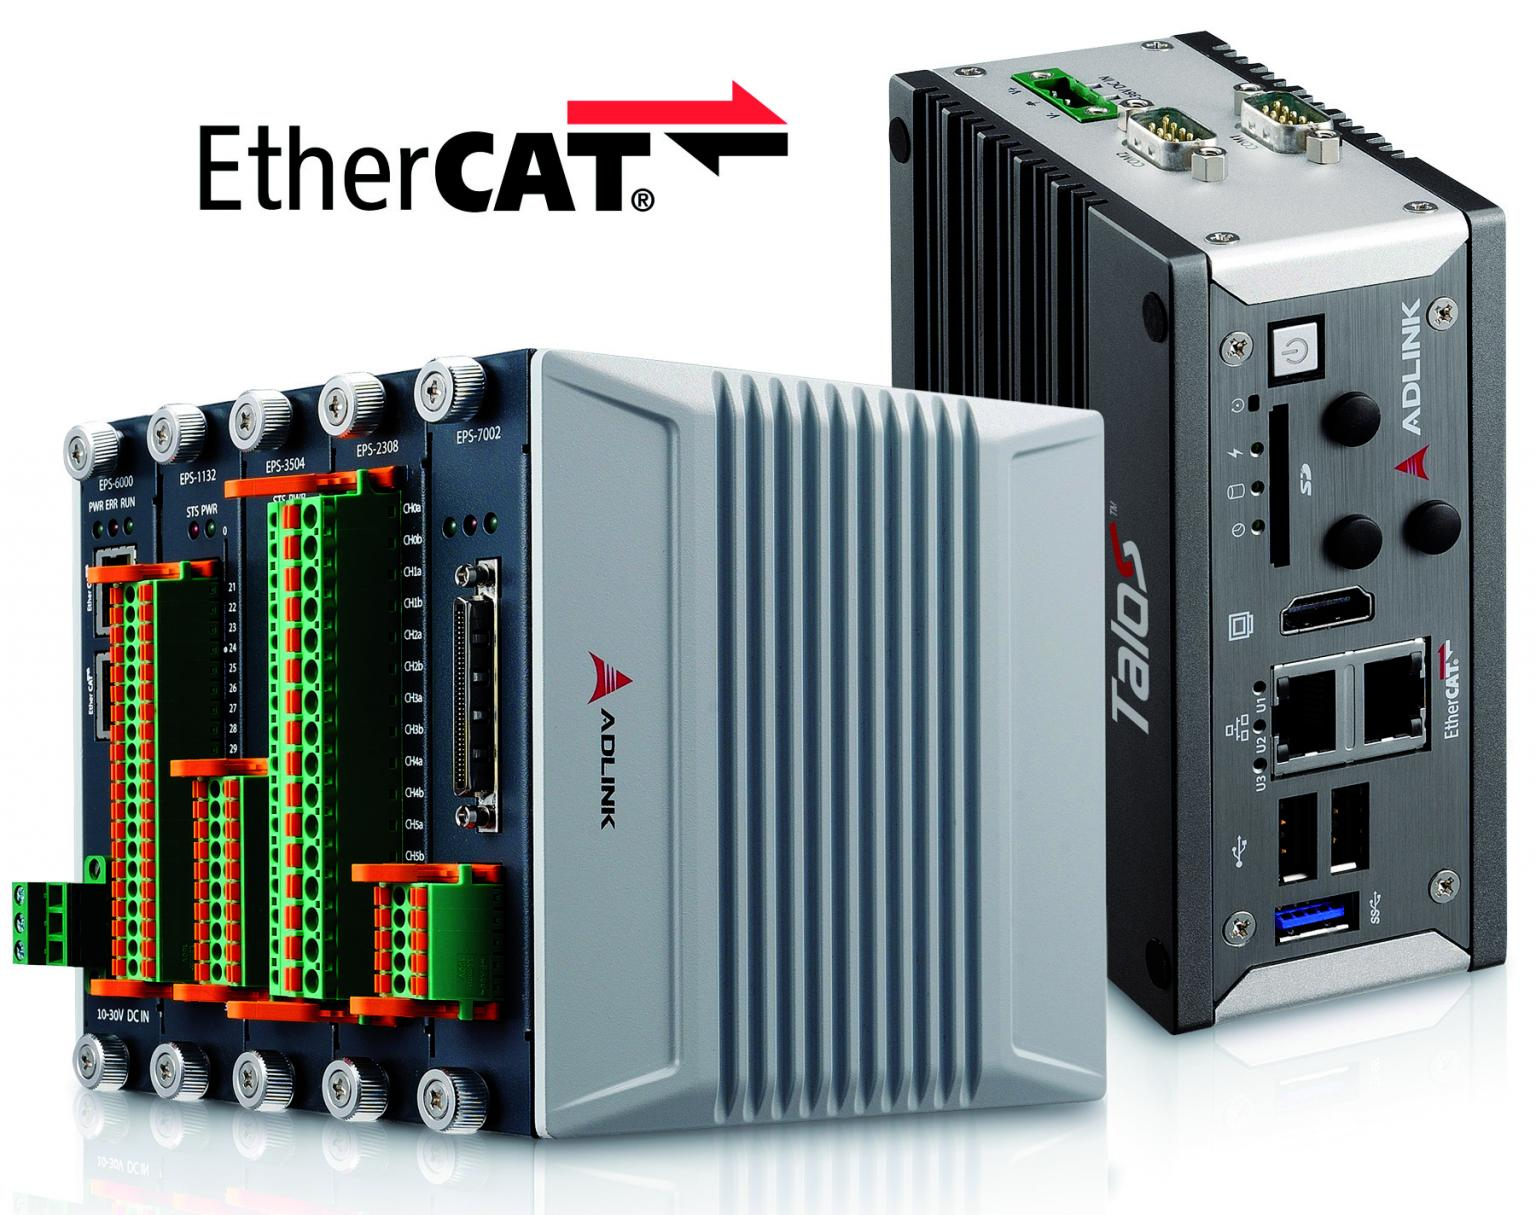 EtherCAT Master Controller Talos-3012 from Acceed